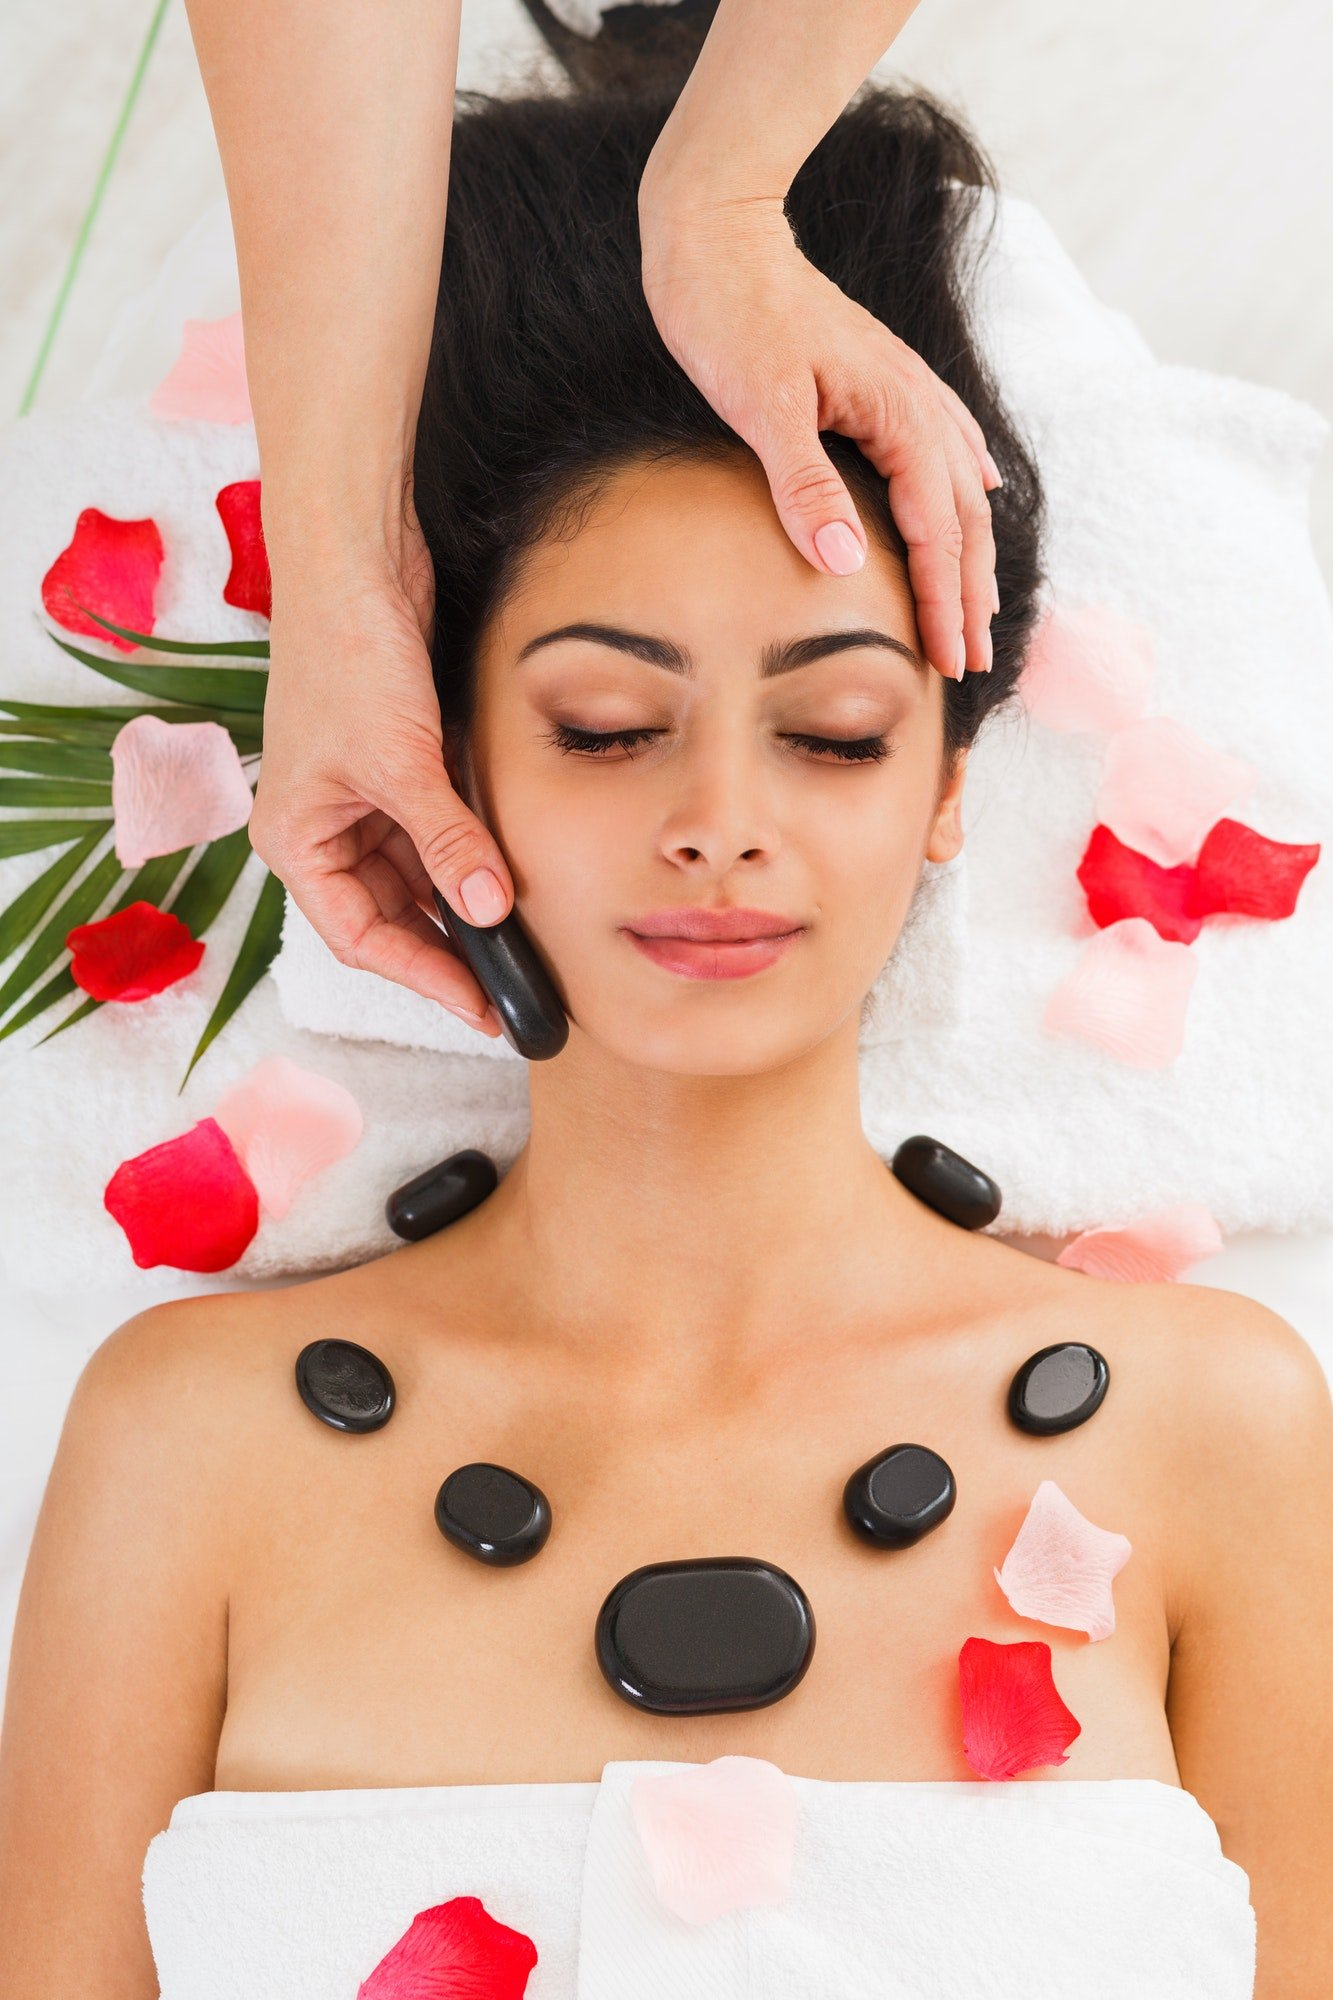 Beautician make stone massage spa for woman at wellness center